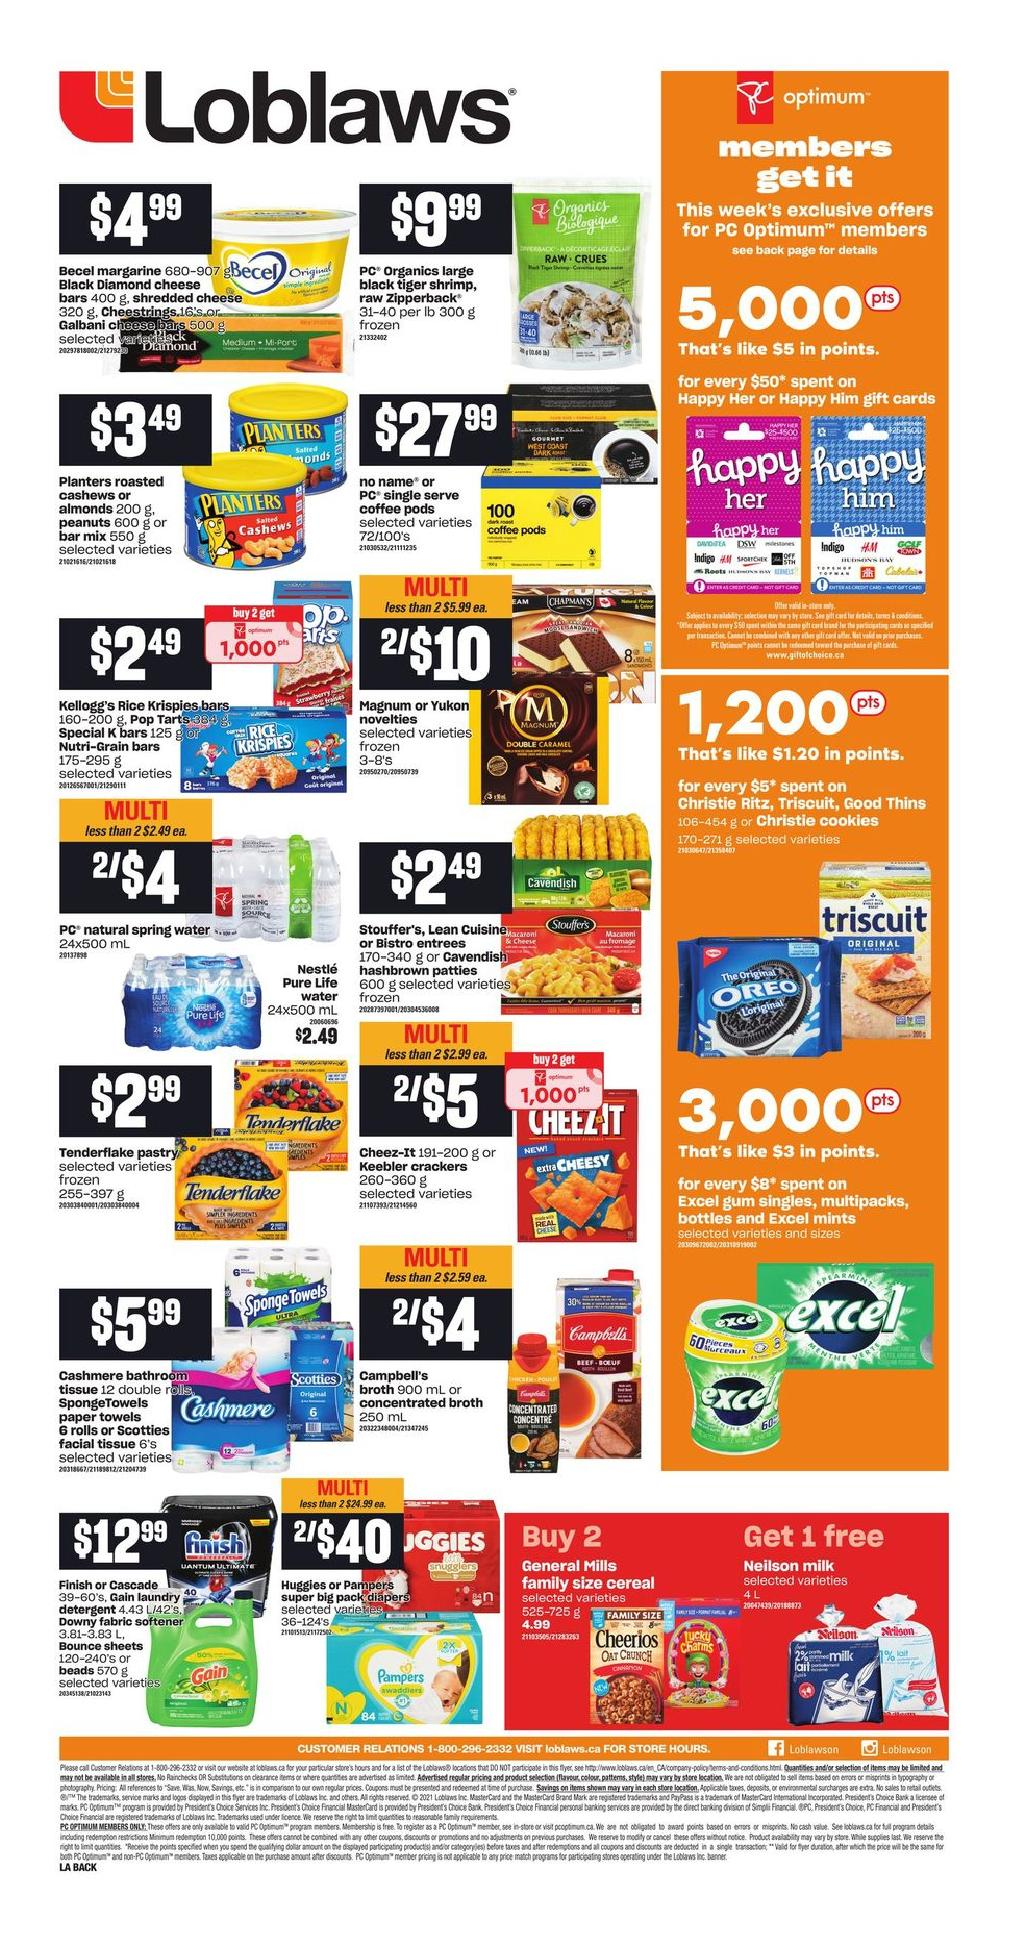 04 Loblaws Flyer April 15 April 21 2021